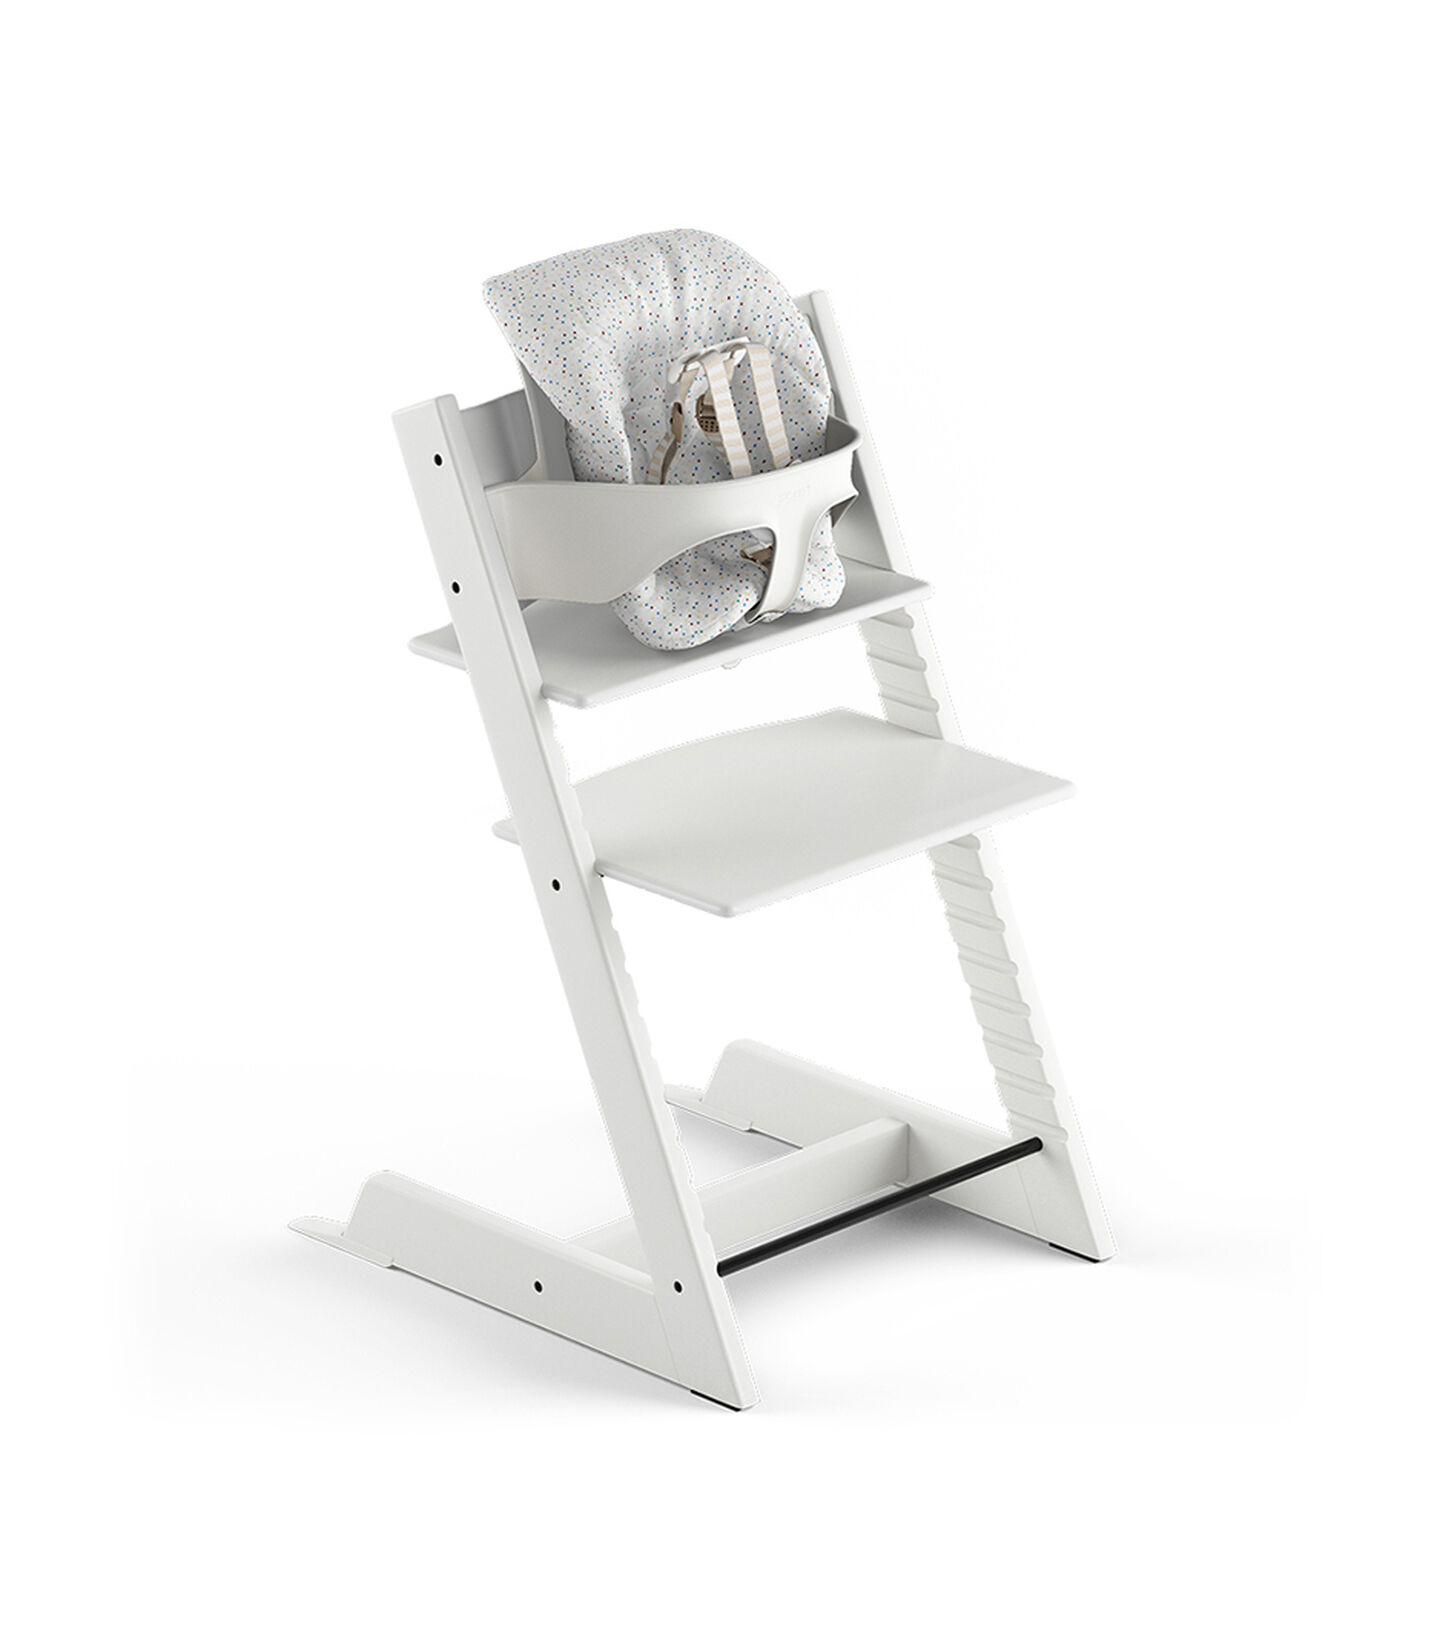 Tripp Trapp® White, Beech. With Tripp Trapp® Baby Set and Baby Cushion Soft Sprinkle. US version with Harness.